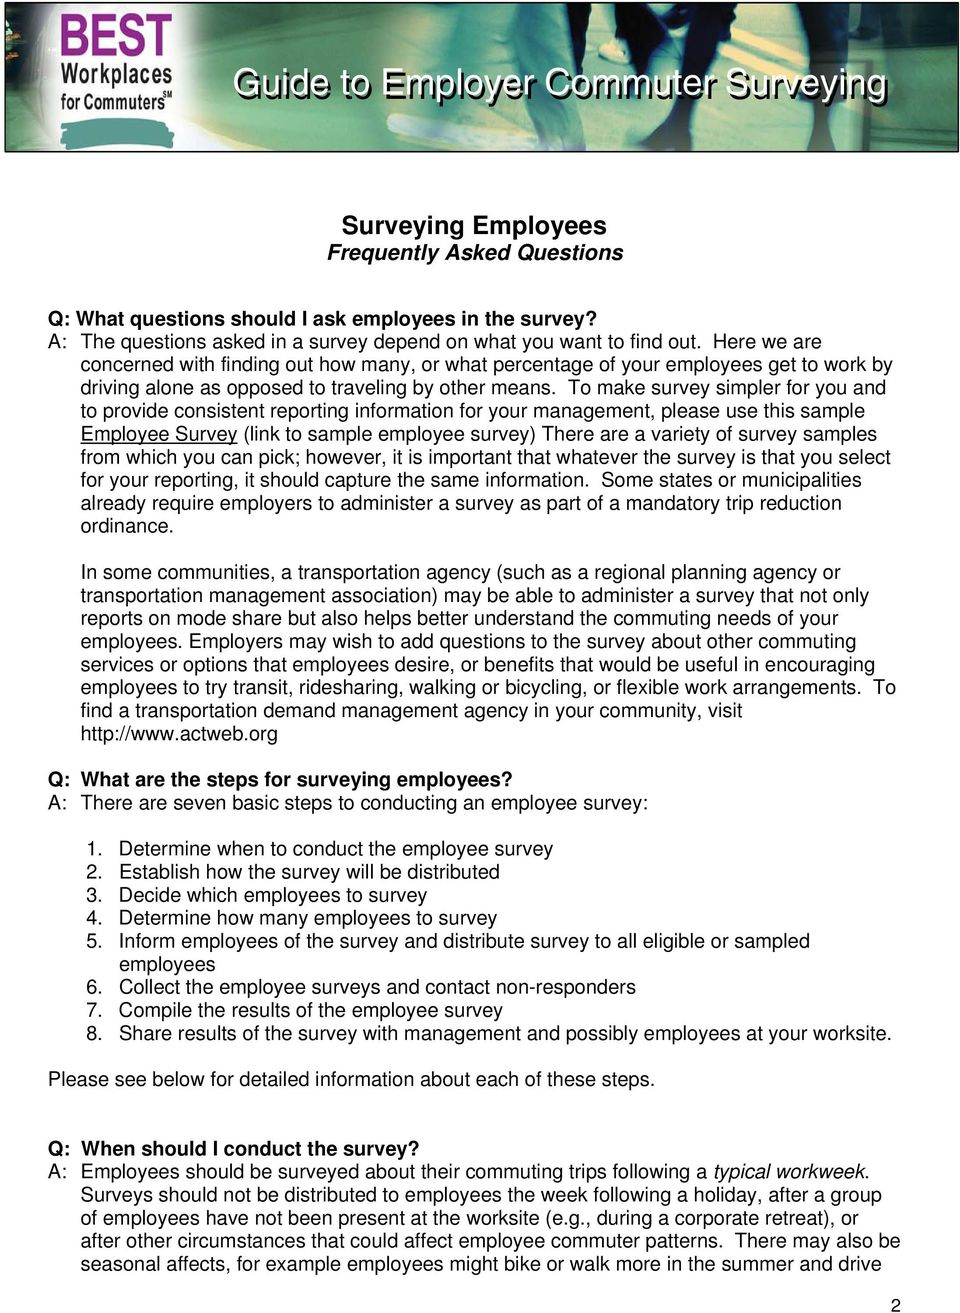 To make survey simpler for you and to provide consistent reporting information for your management, please use this sample Employee Survey (link to sample employee survey) There are a variety of